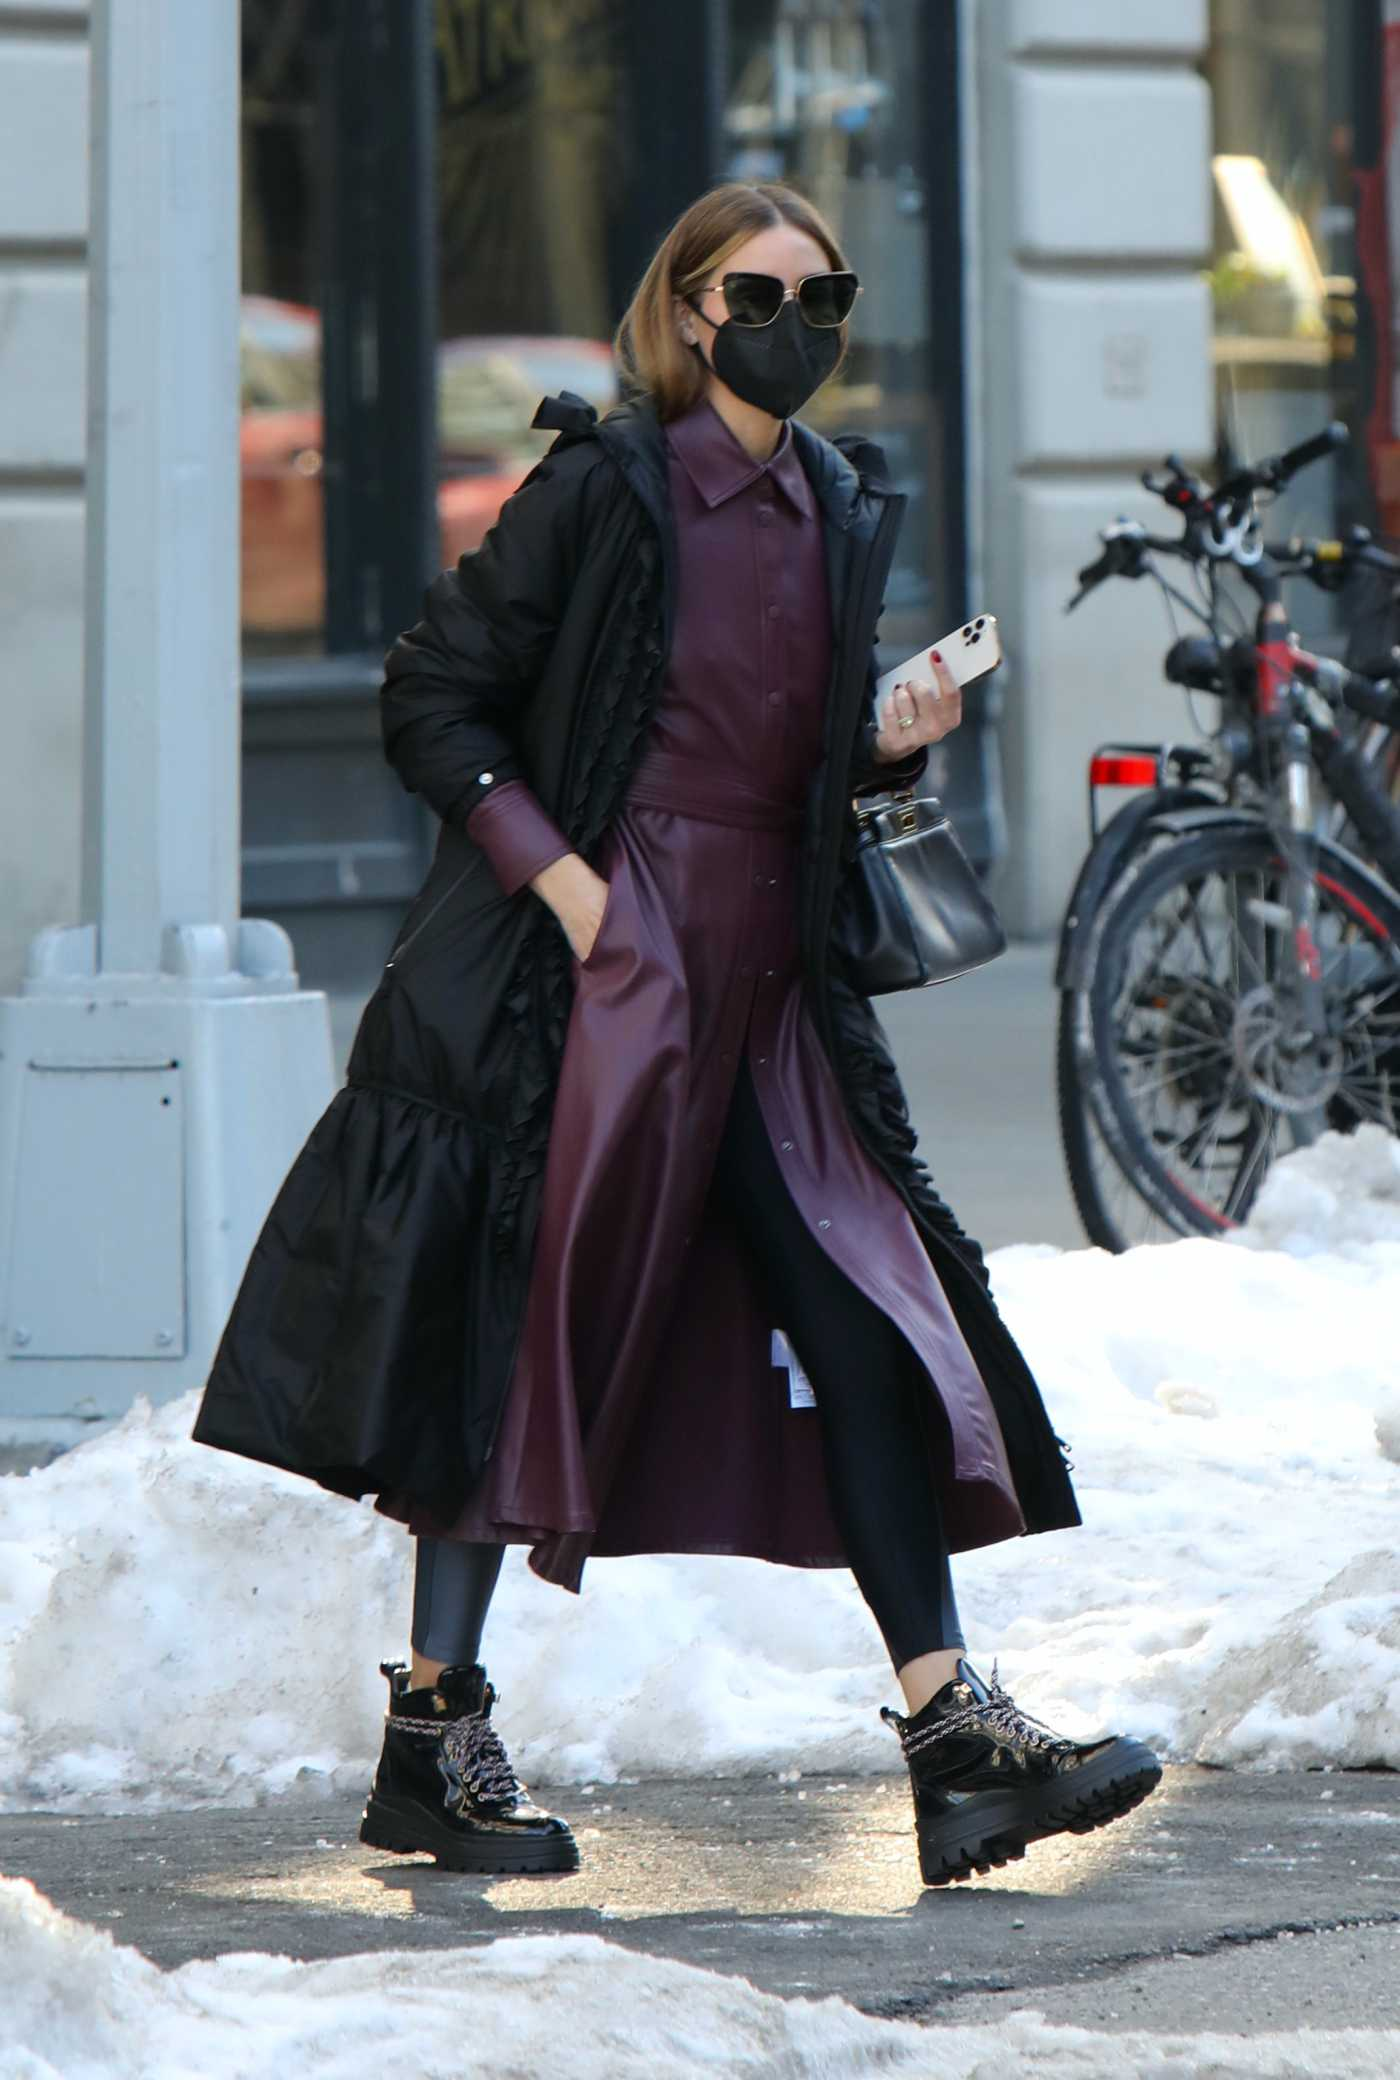 Olivia Palermo in a Black Coat Was Seen Out in Dumbo, Brooklyn 02/10/2021